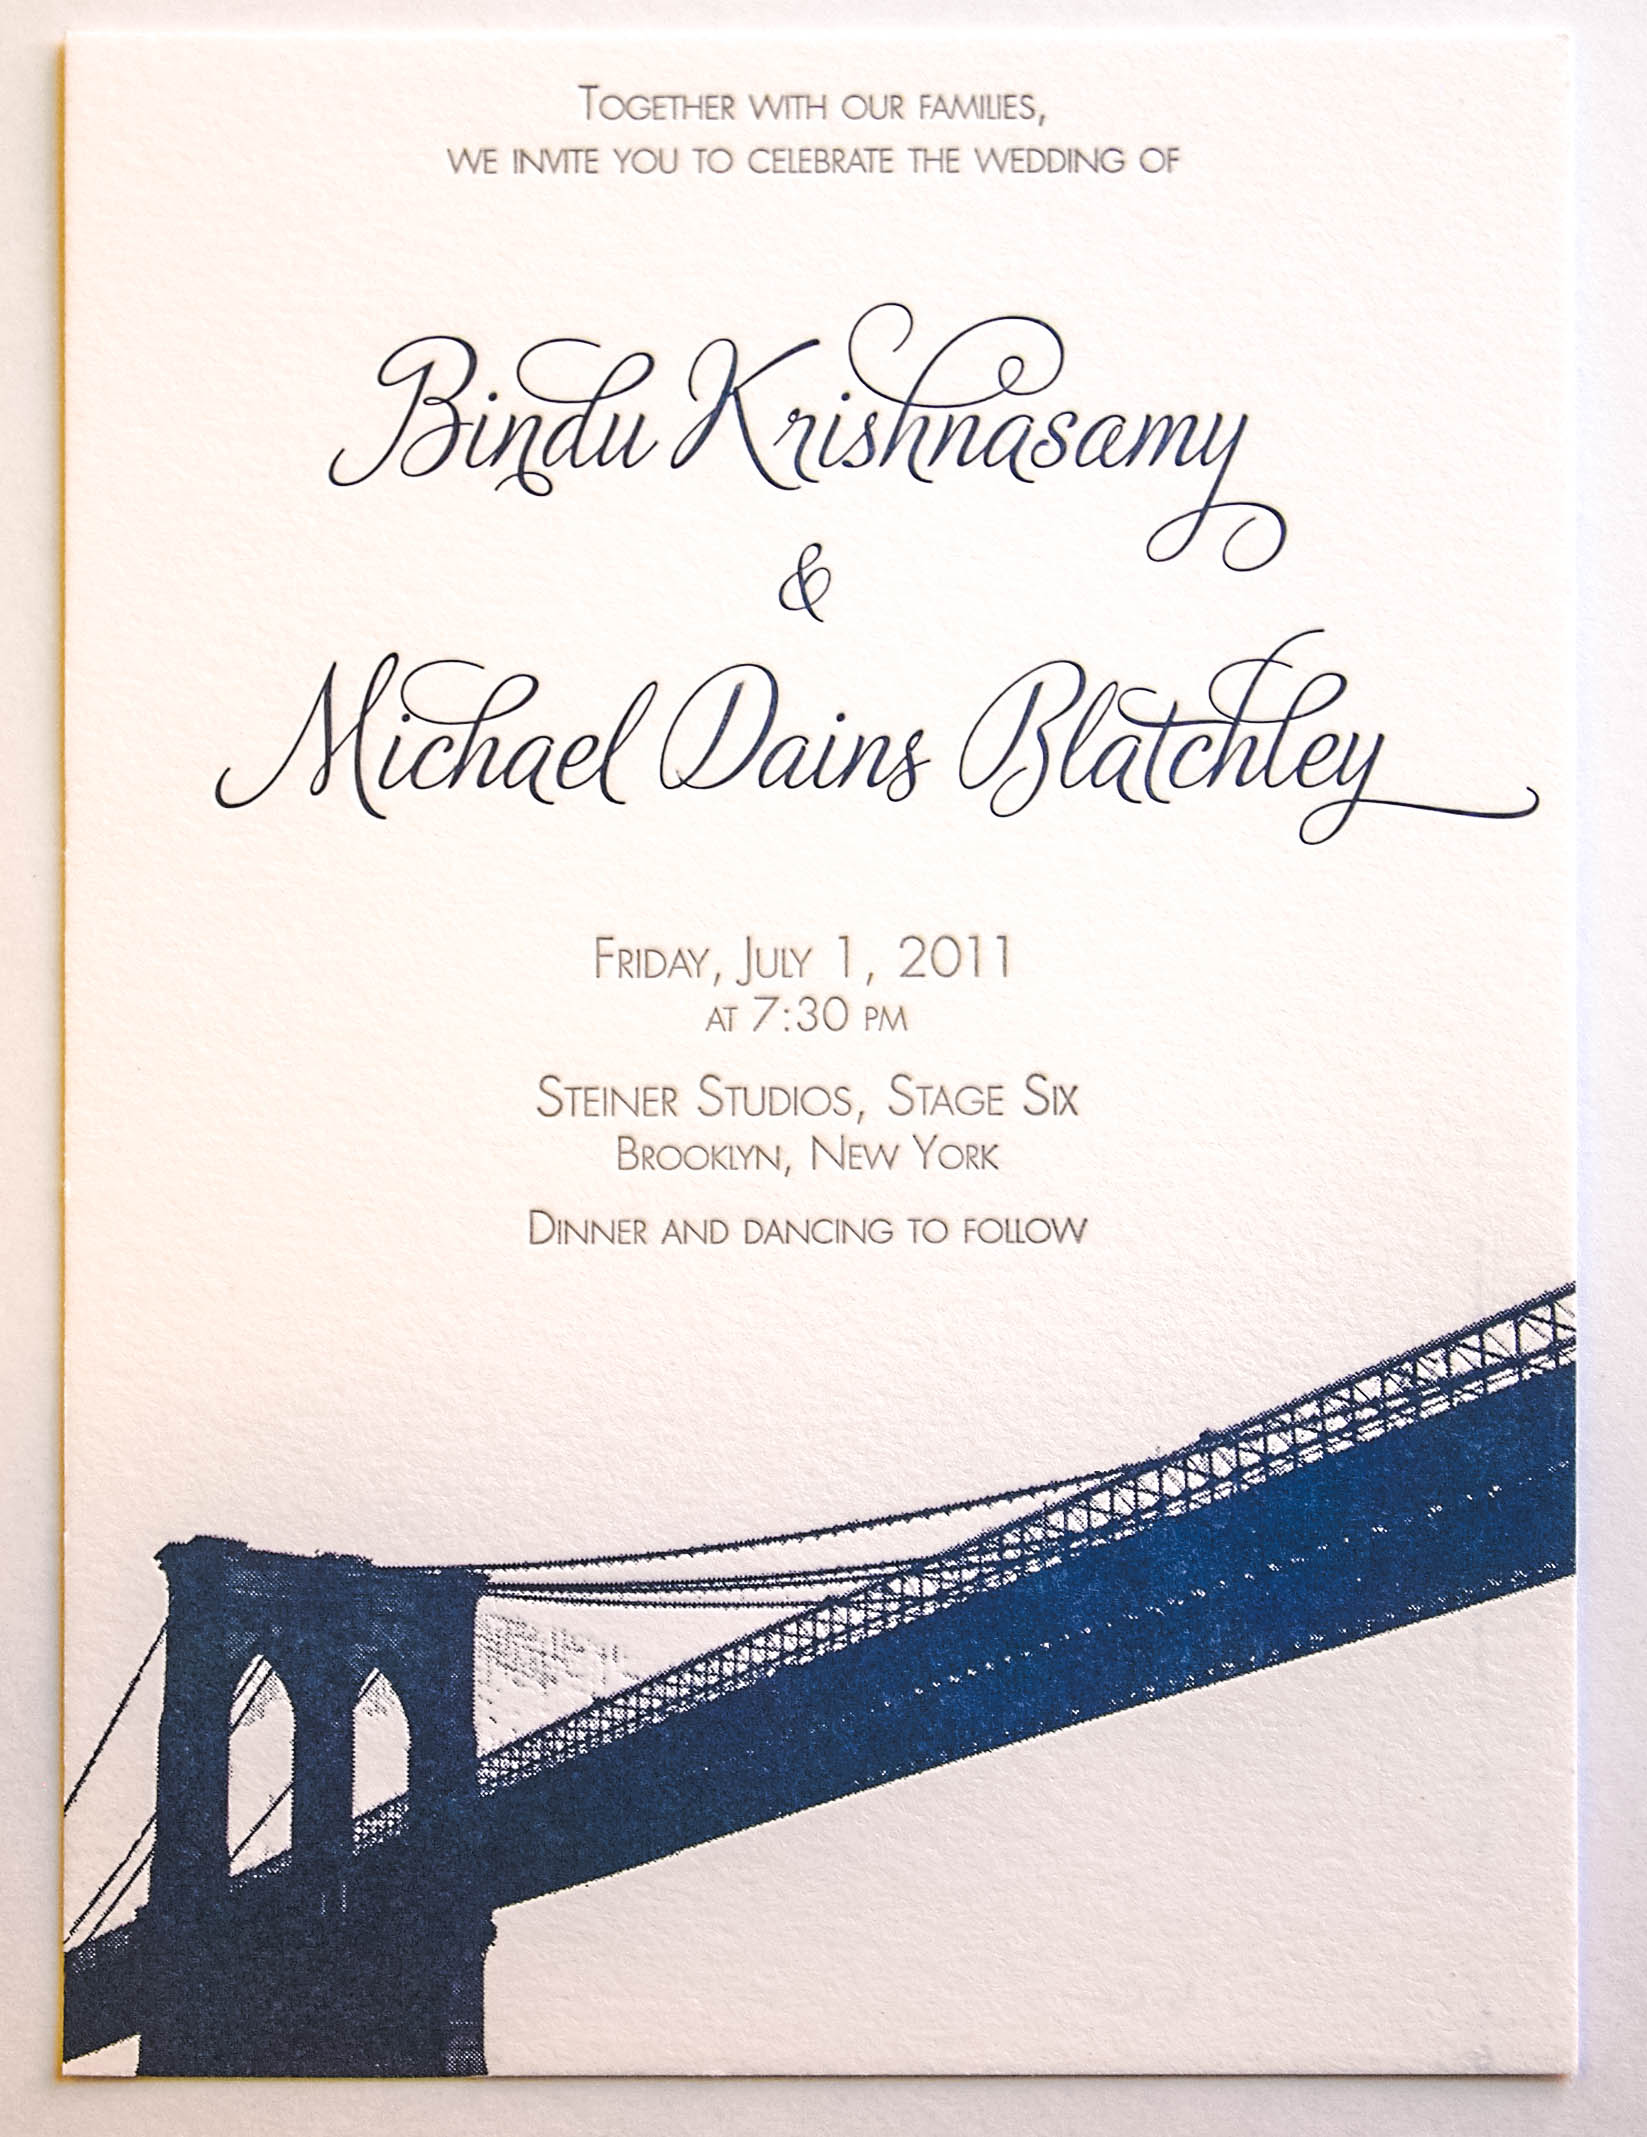 Bindu and Michael's Brooklyn Bridge custom designed and letterpress wedding invitation